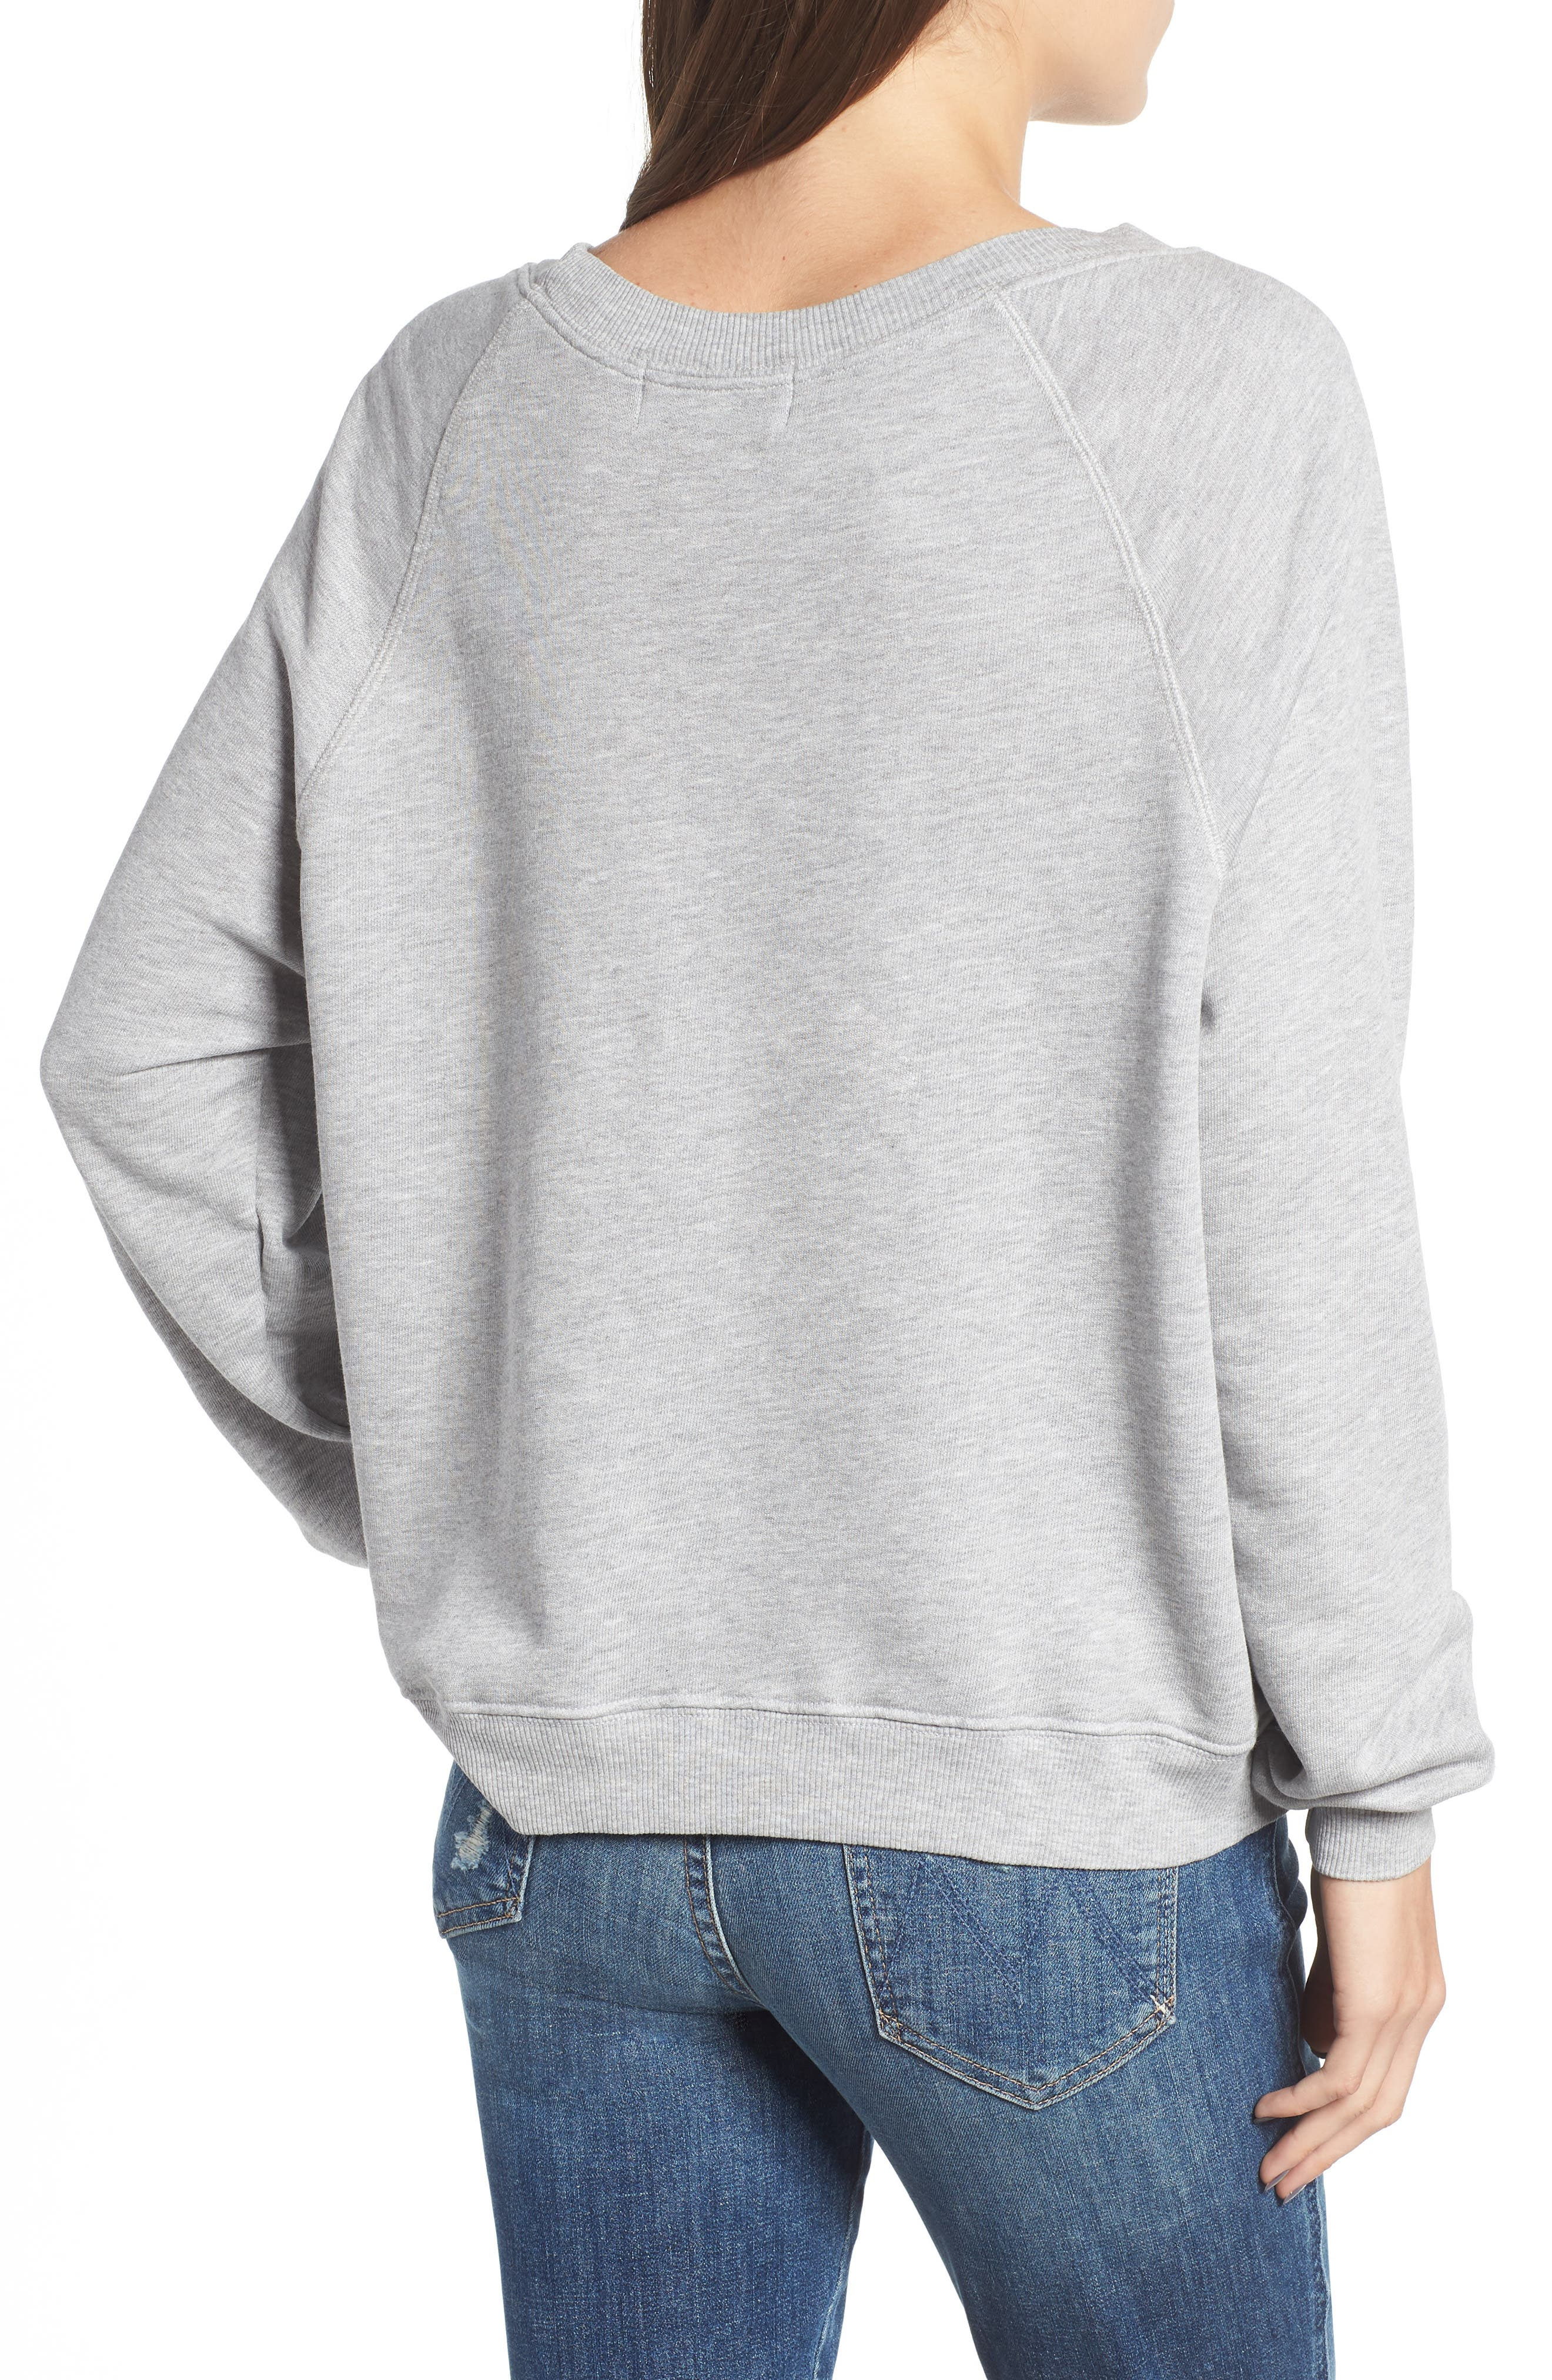 Austin Crest Sommers Sweatshirt,                             Alternate thumbnail 2, color,                             HEATHER